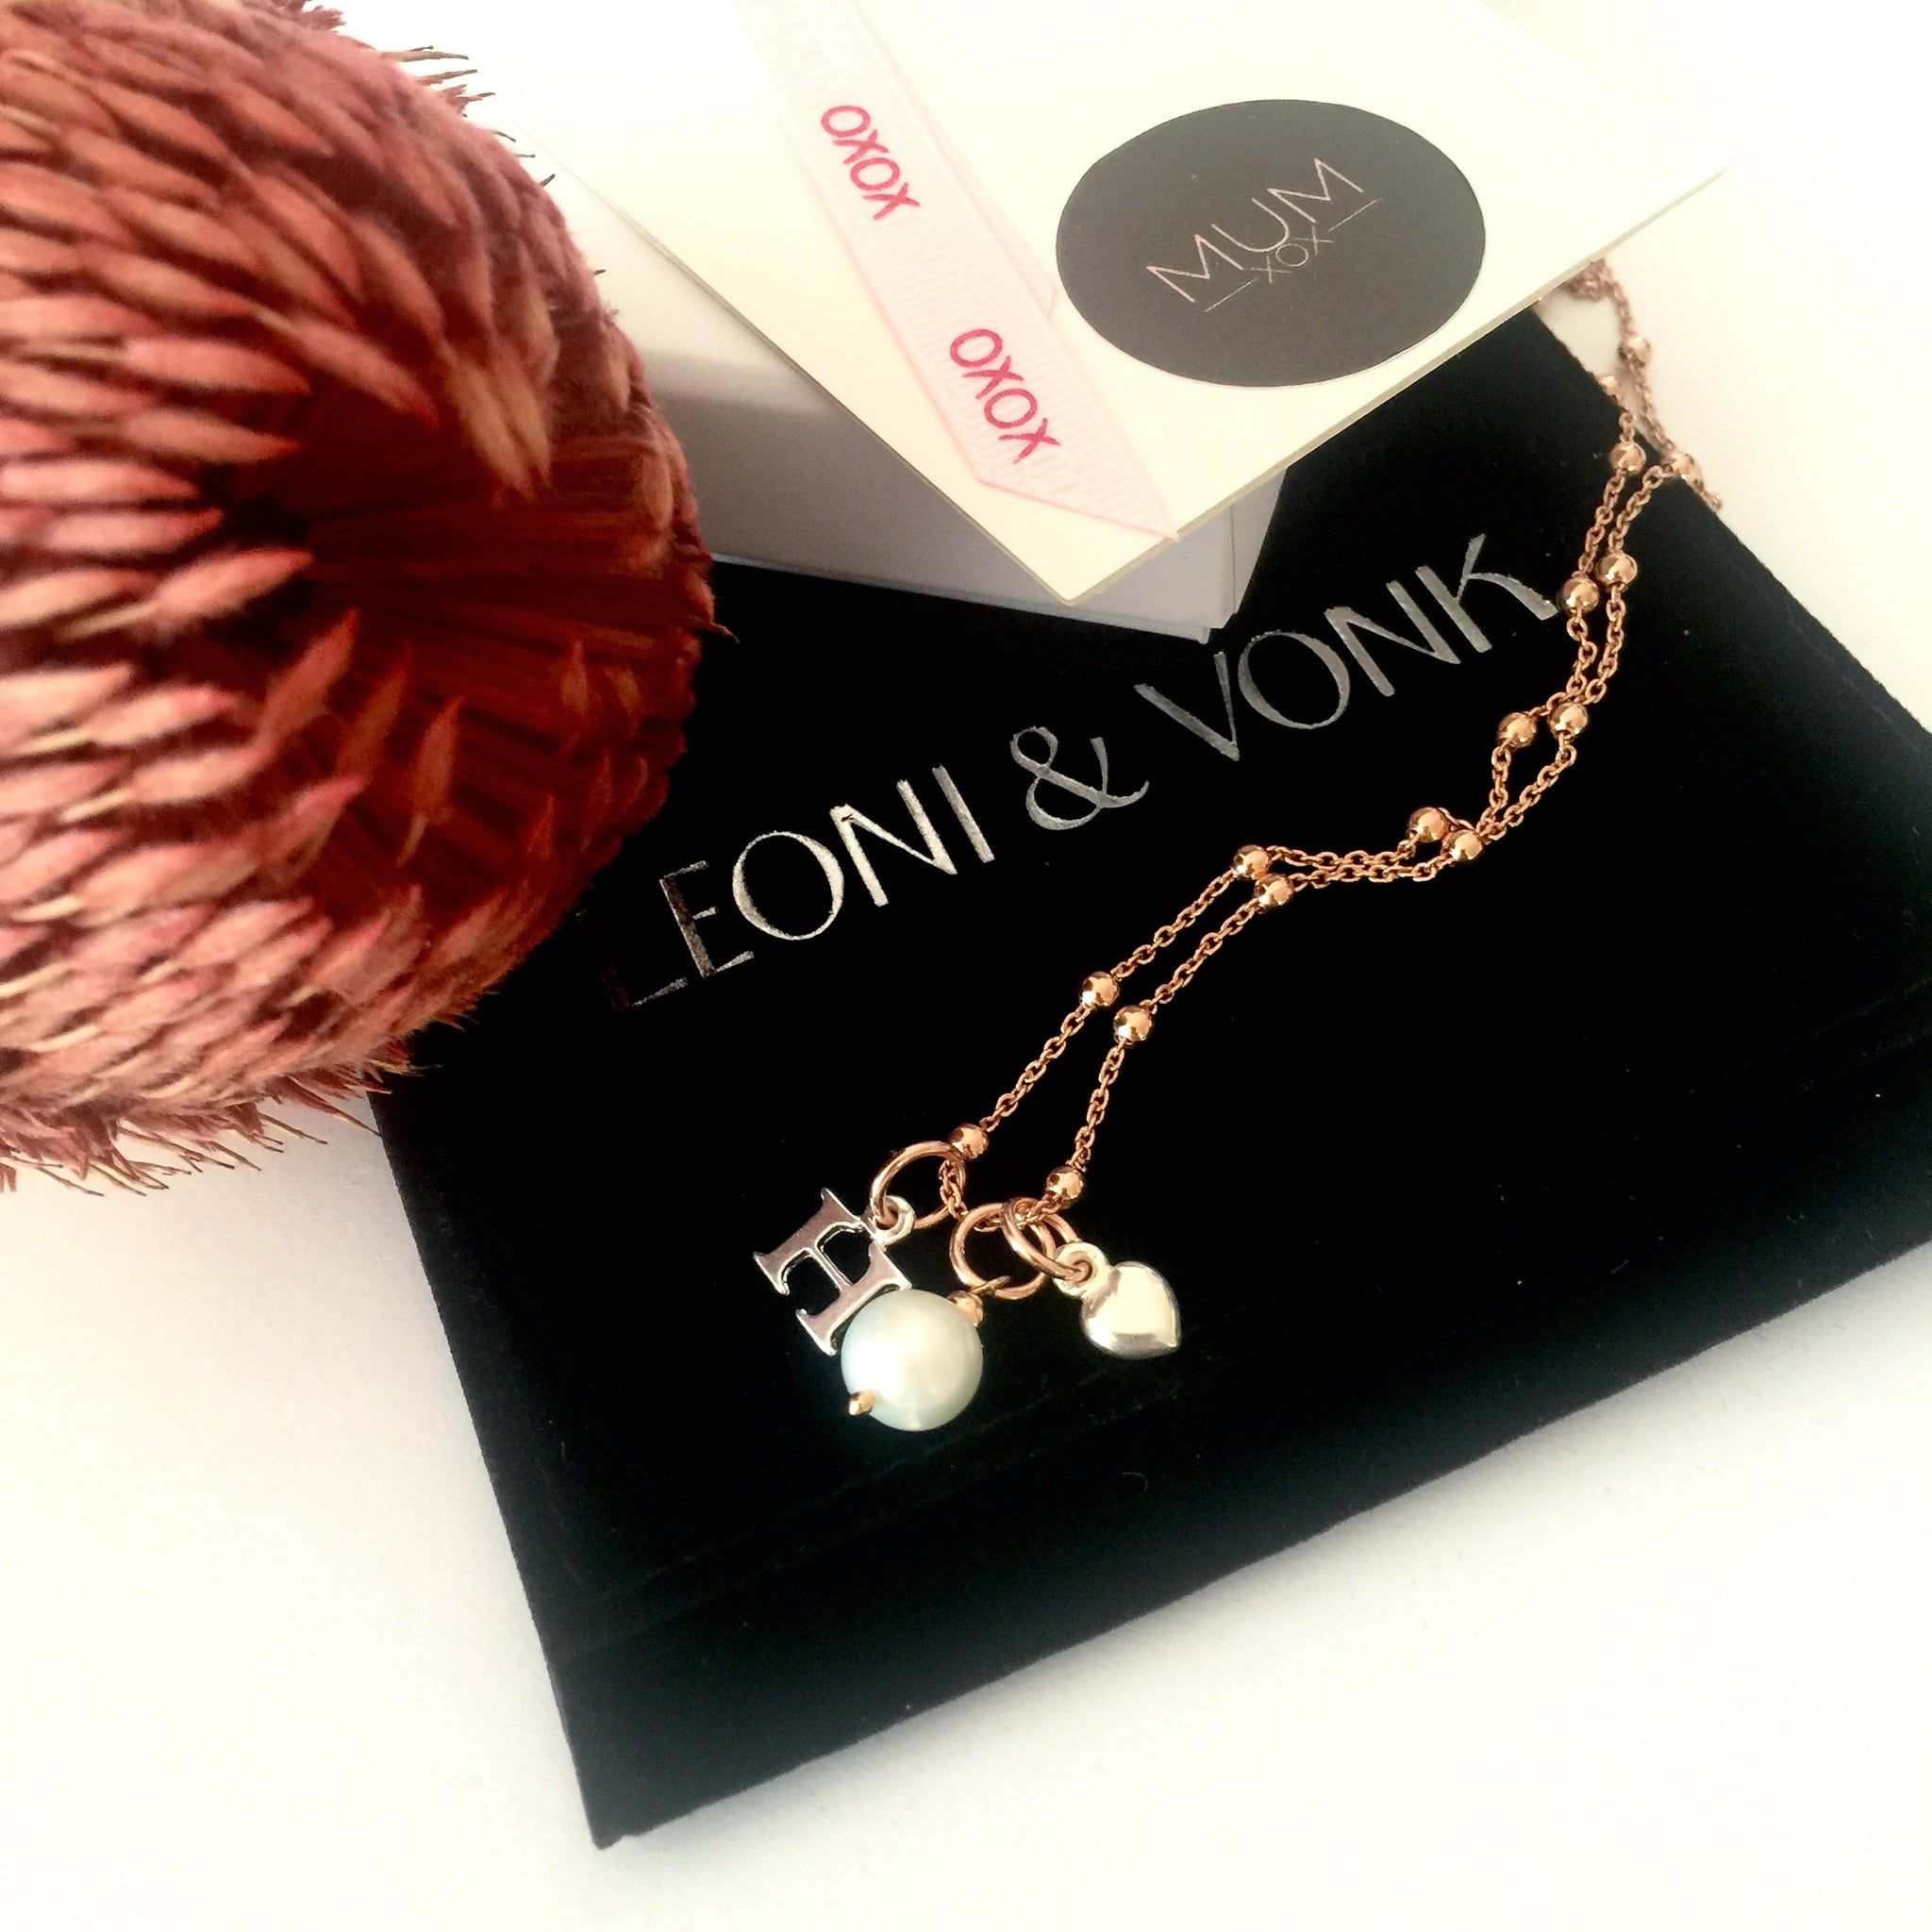 Leoni & Vonk Mothers day gift guide with personalised jewellery